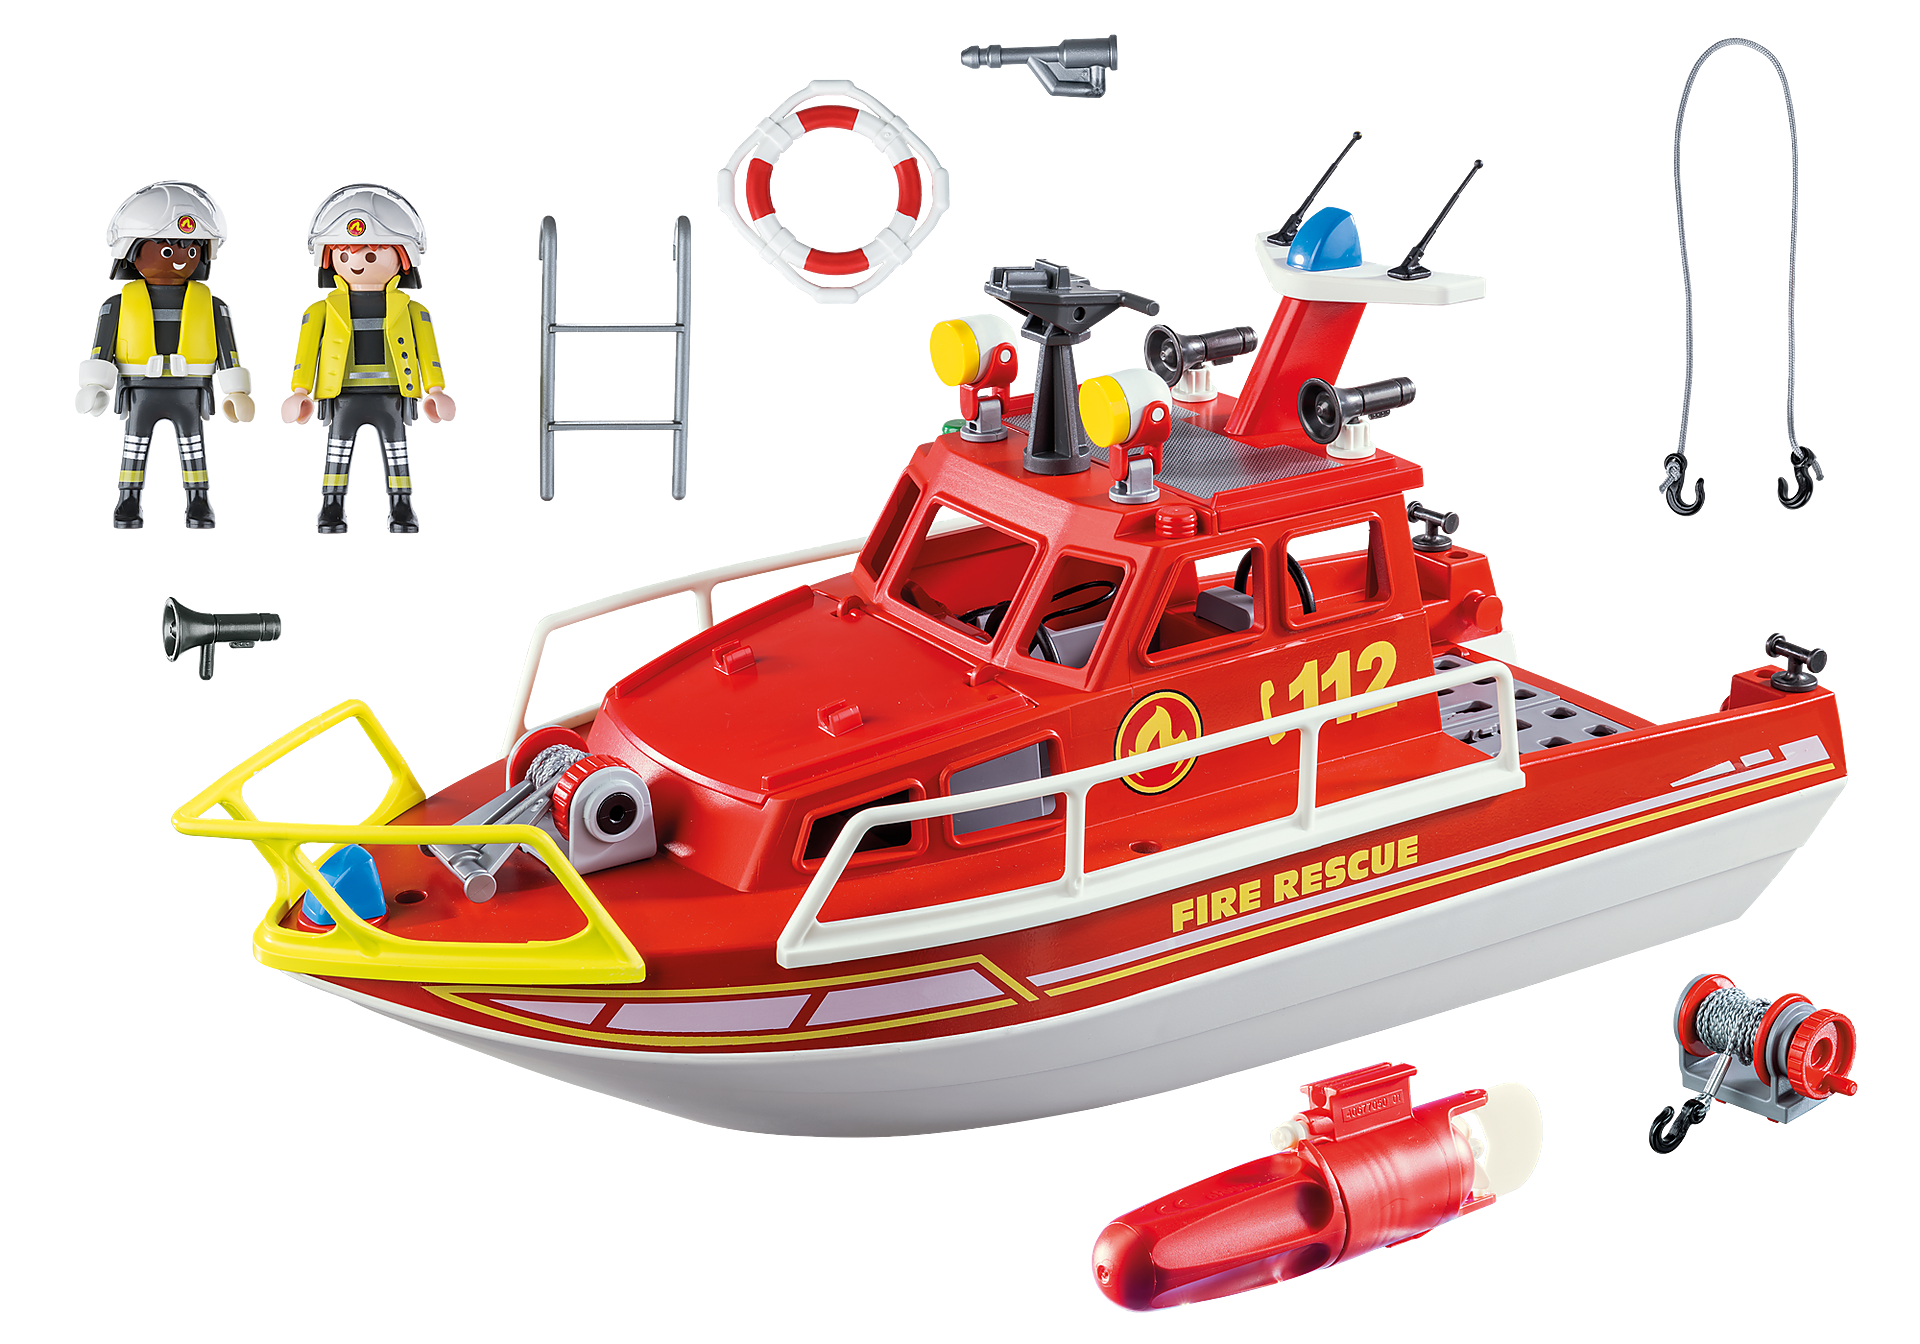 70147 Fire Rescue Boat zoom image3